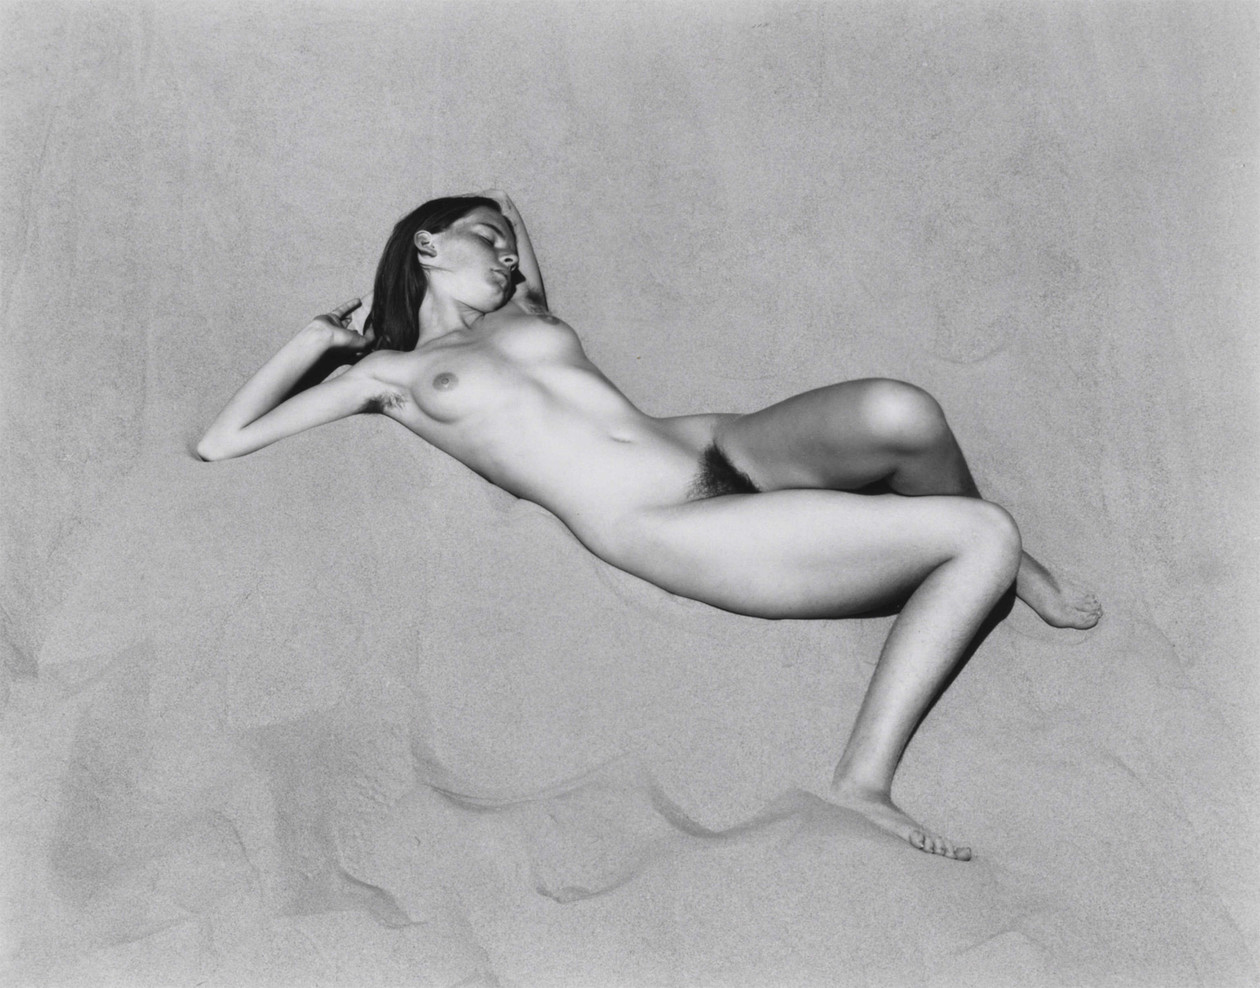 Nude (233N) (1936) by Edward Weston